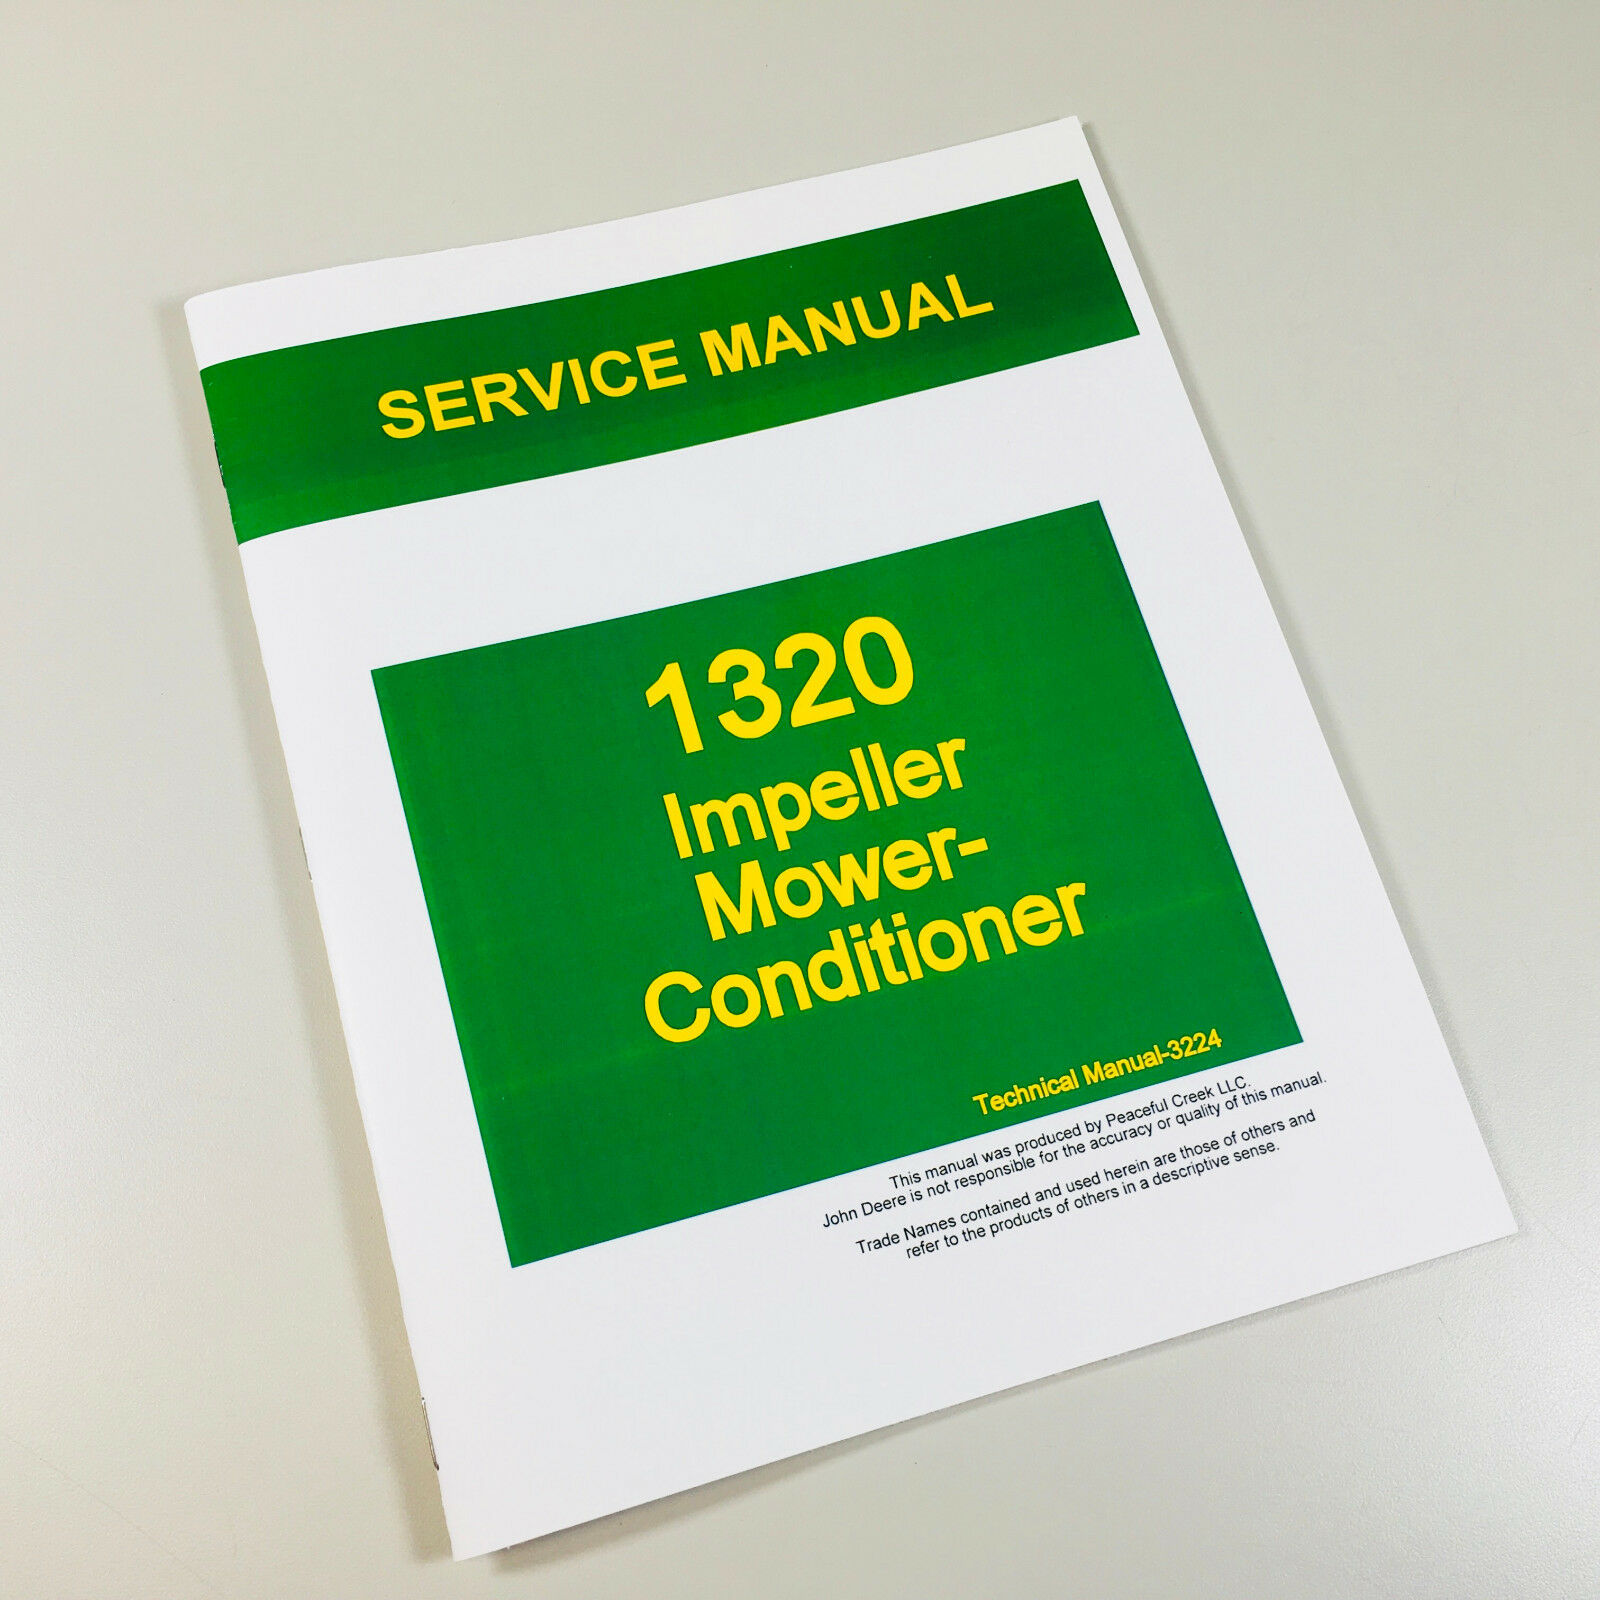 Service Manual For John Deere 1320 Impeller Mower Conditioner Repair Shop  Book 1 of 1Only 4 available ...